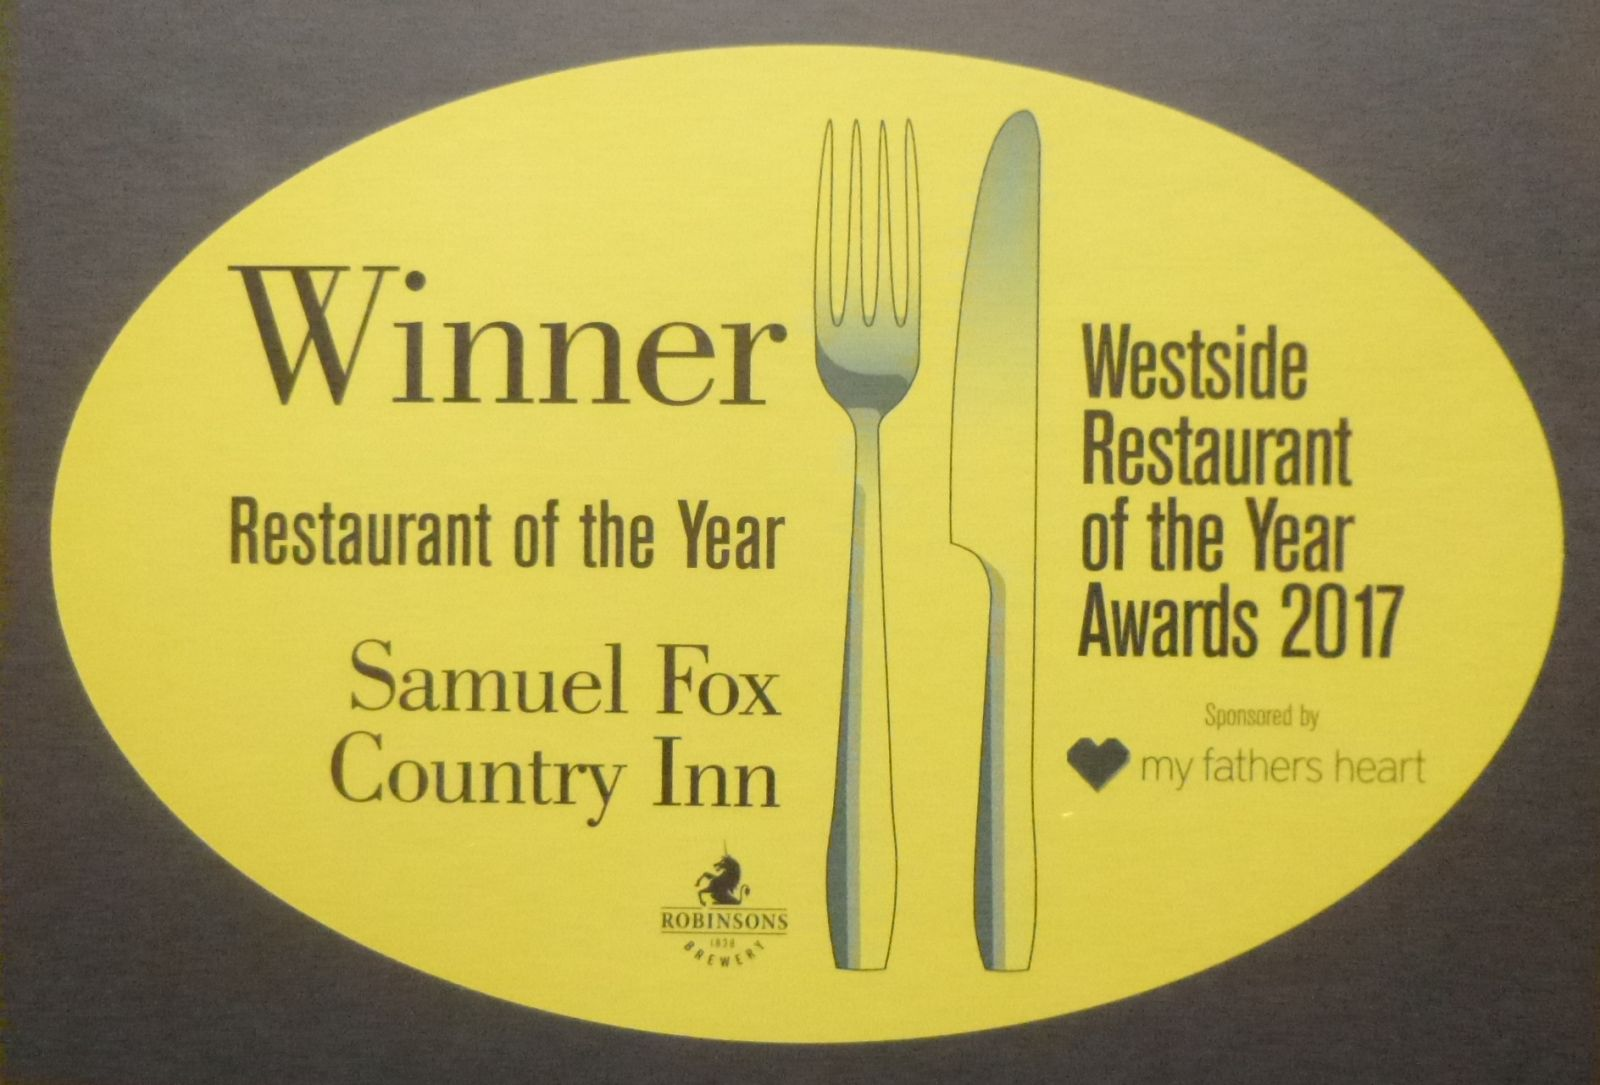 Sheffield Westside Restaurant of the Year 2017